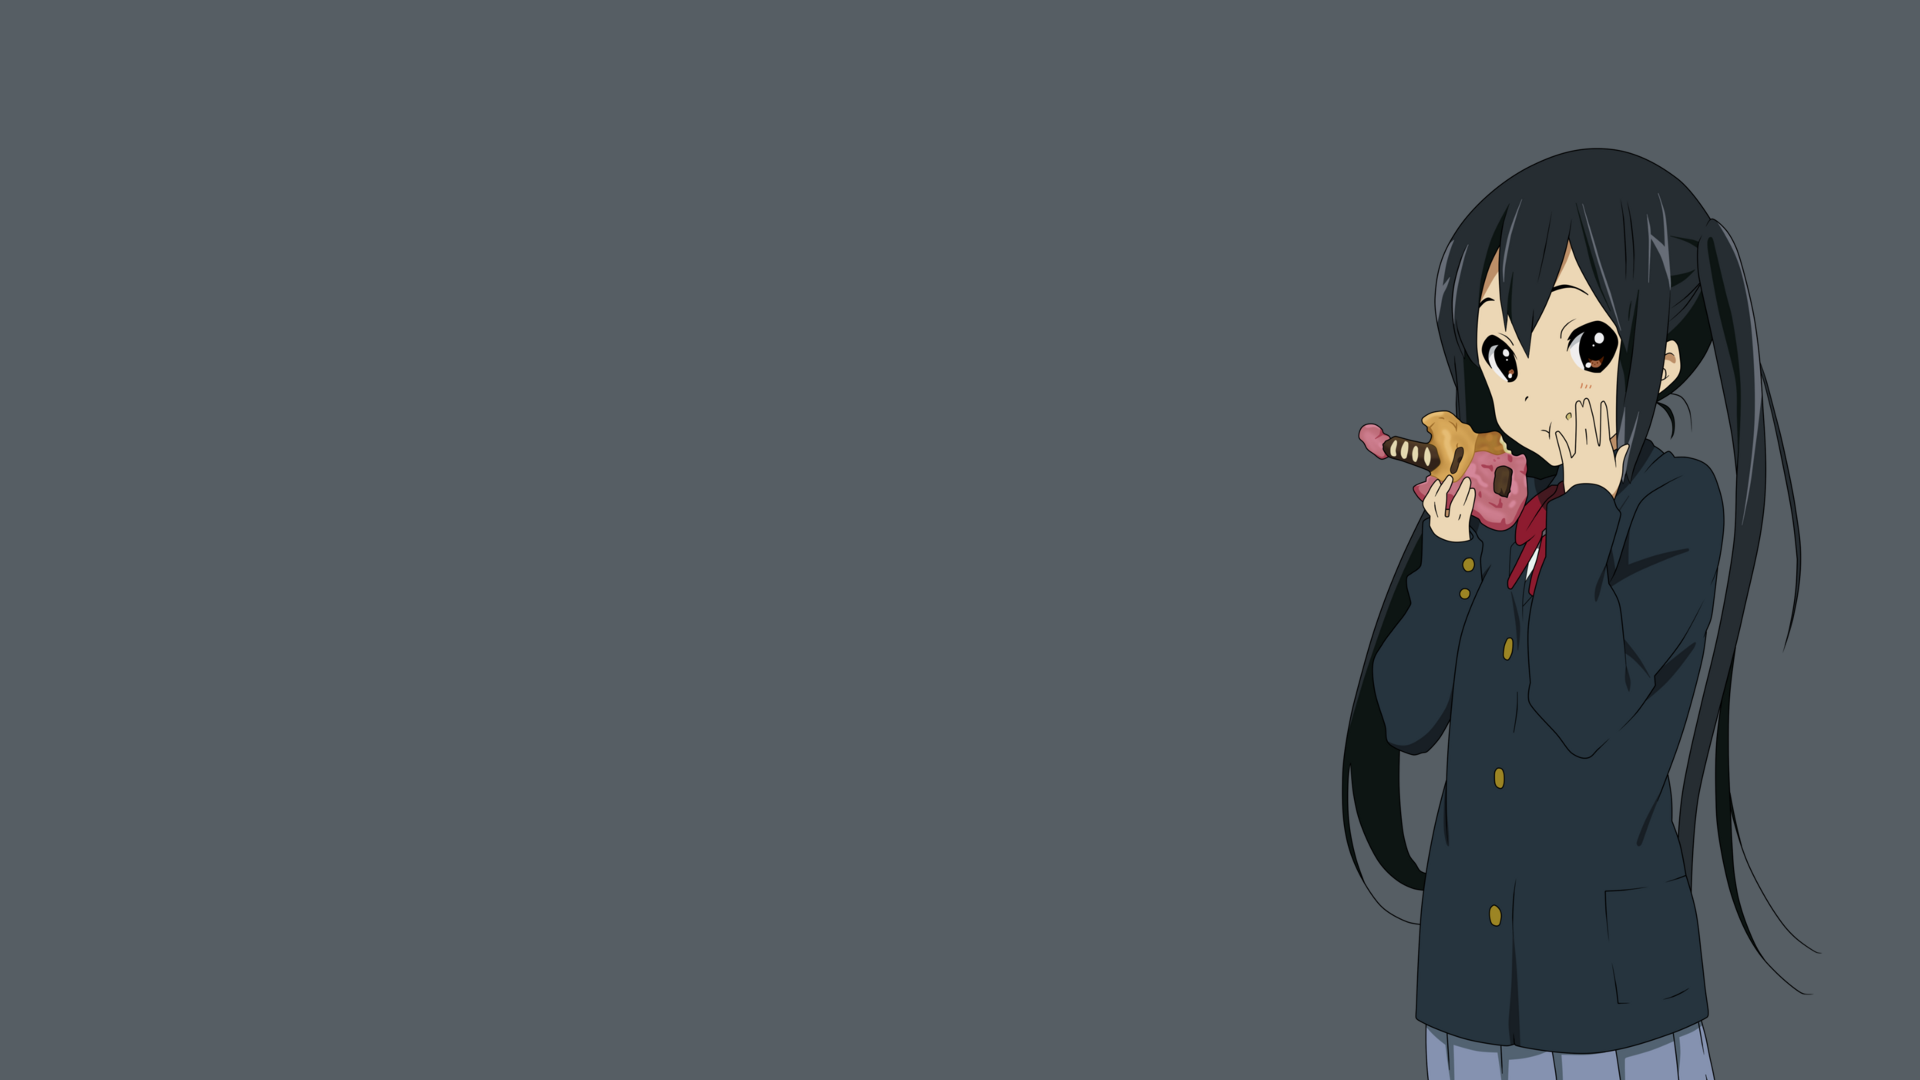 Anime 1920x1080 simple background